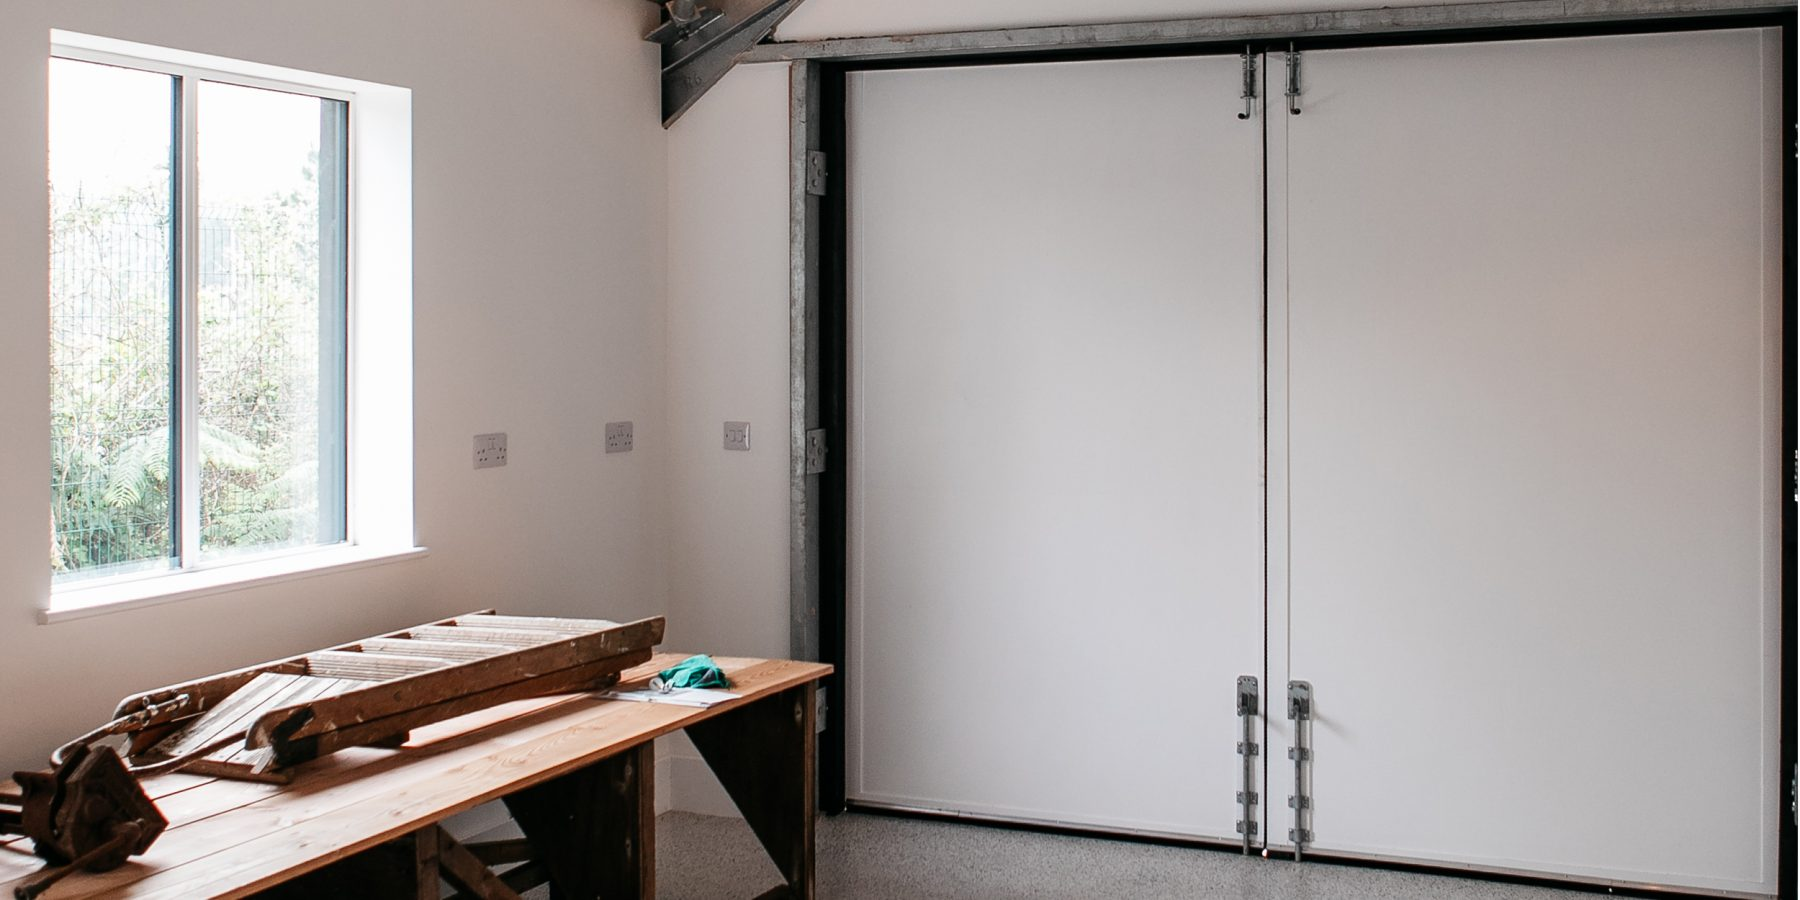 Thumbnail of http://Large%20warehouse%20style%20double%20doors%20next%20to%20a%20workbench